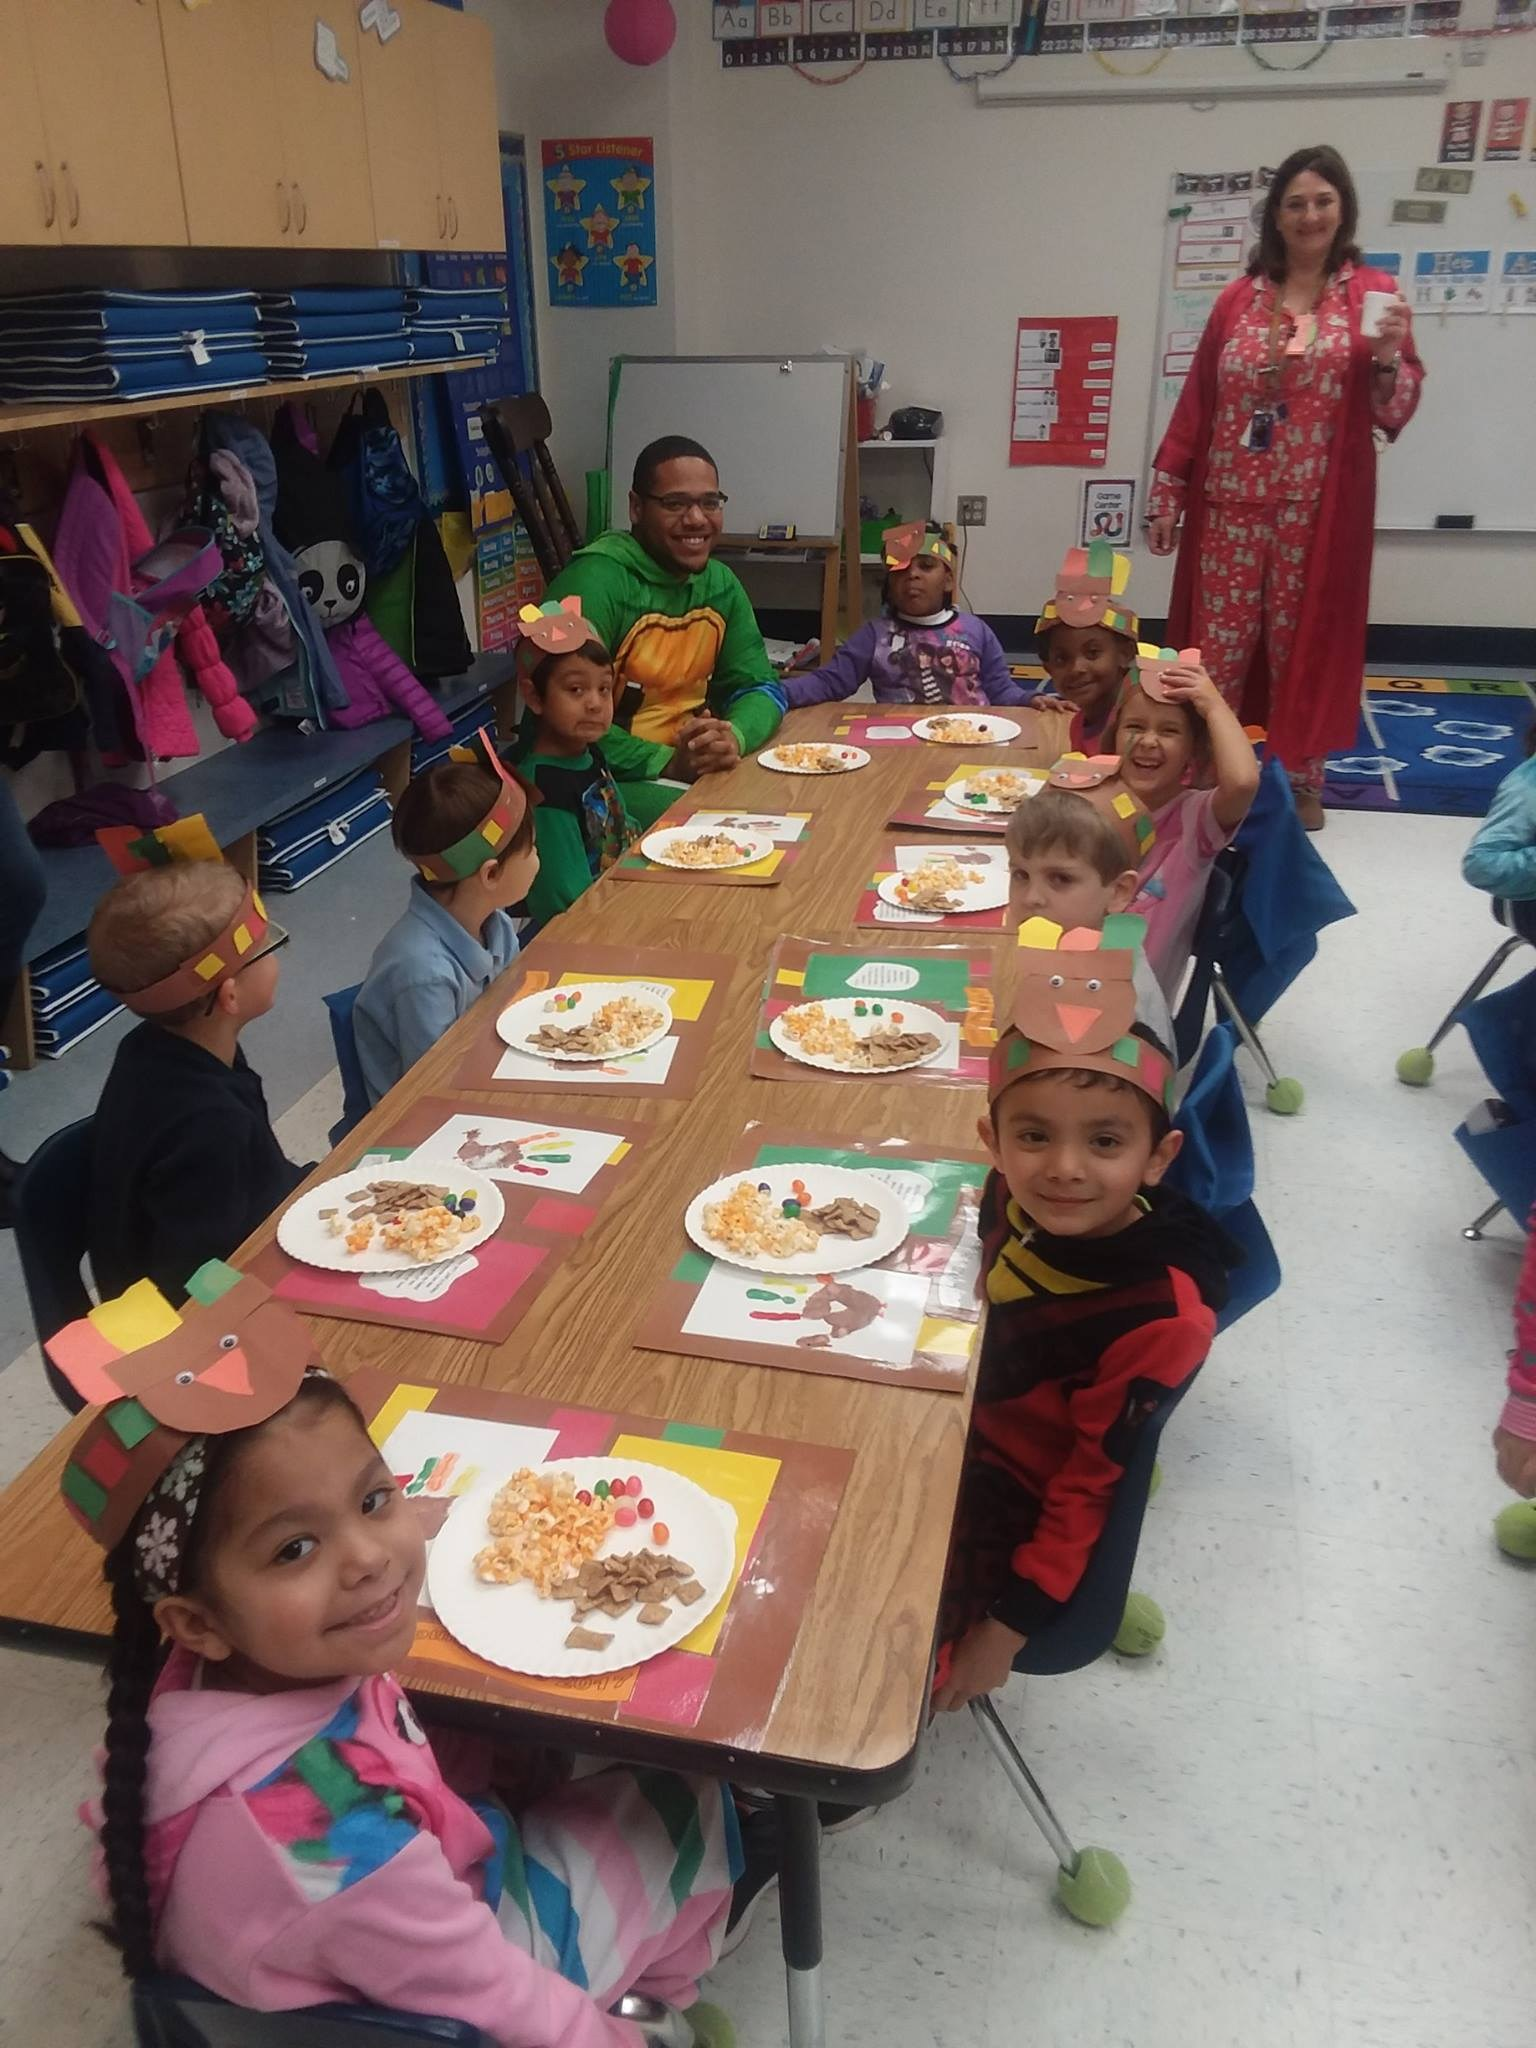 Mr. Smith enjoying a Charlie Brown thanksgiving meal with young 5 students.